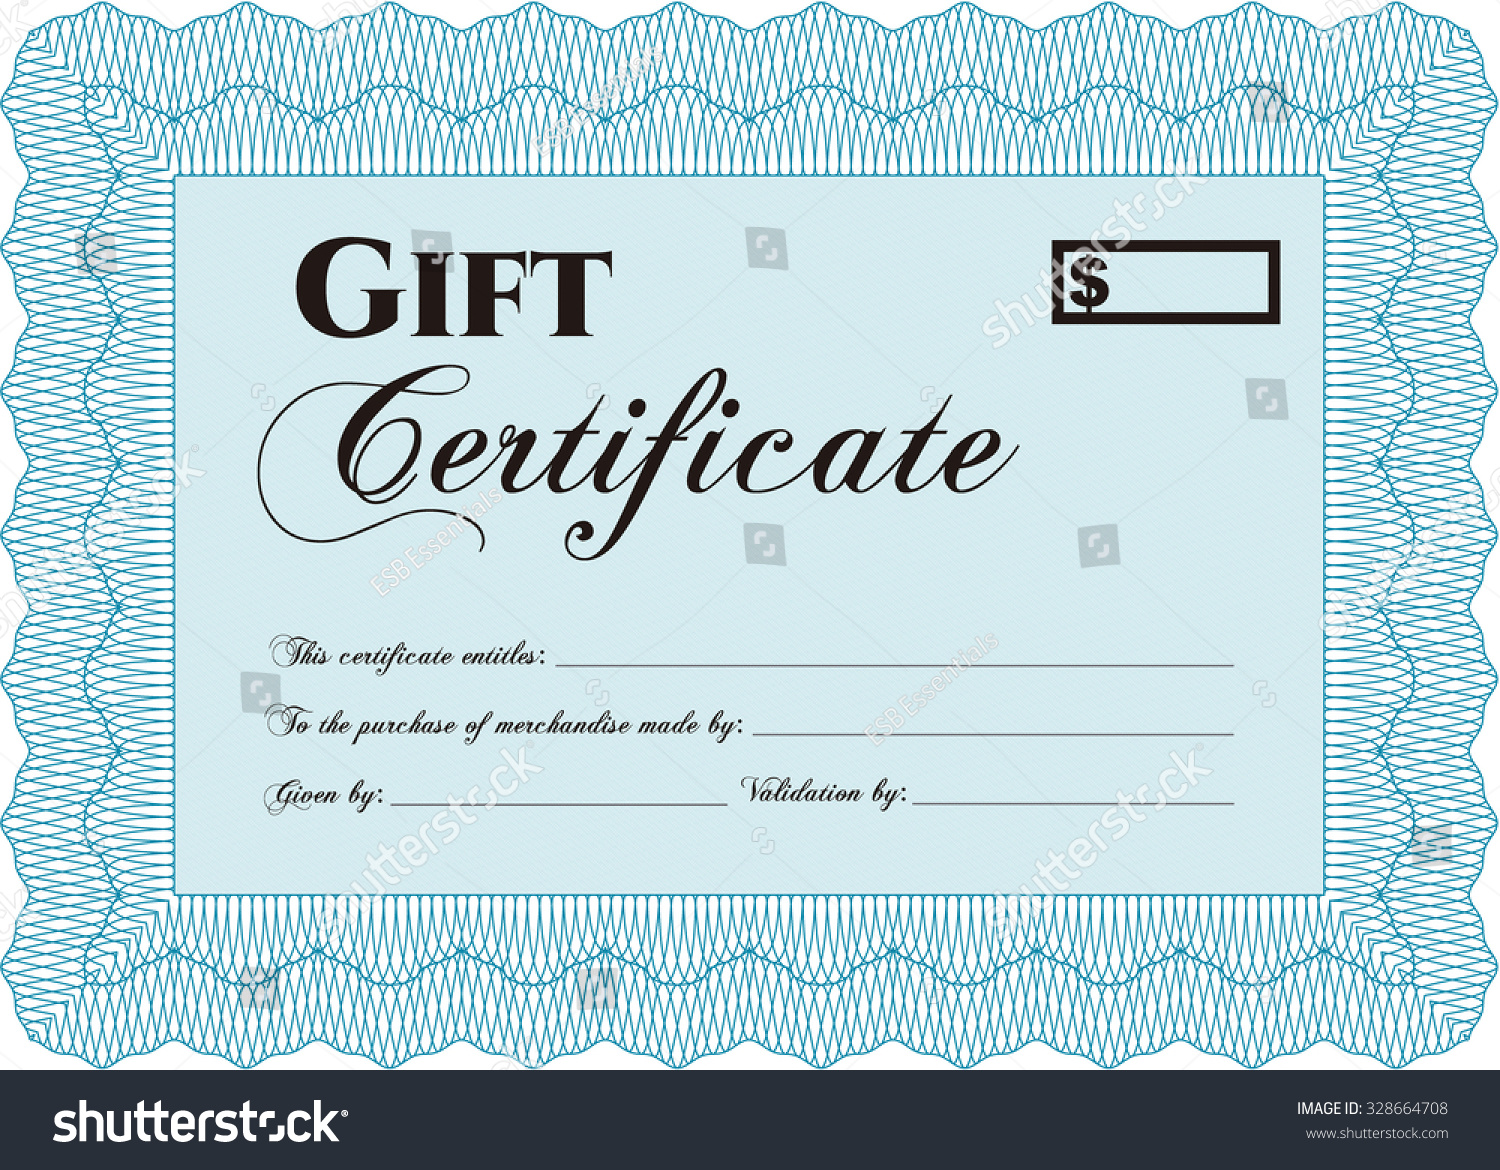 Retro Gift Certificate Template Customizable Easy Stock Vector